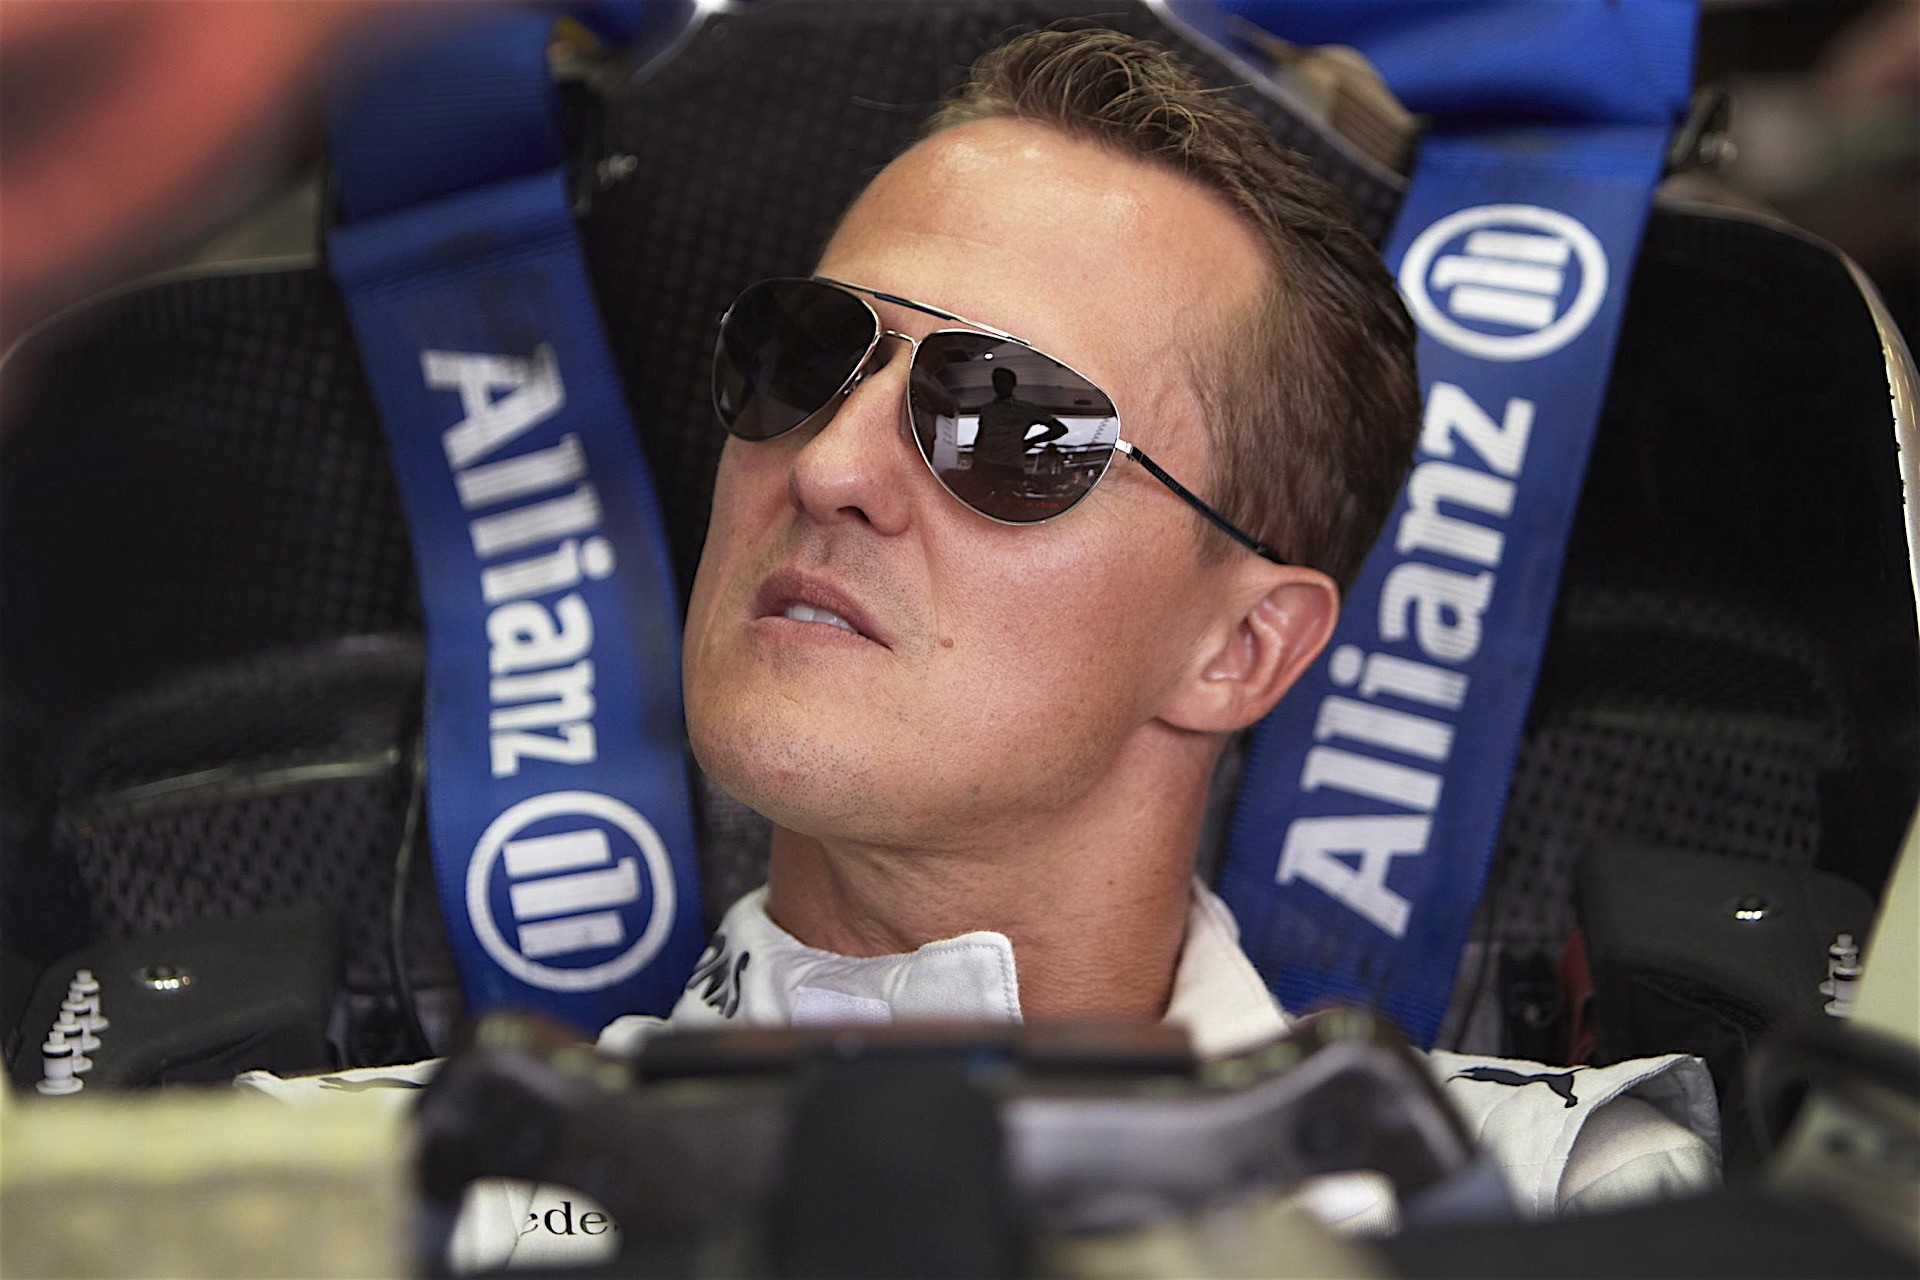 Michael Schumacher S Coma Two Months On Questions